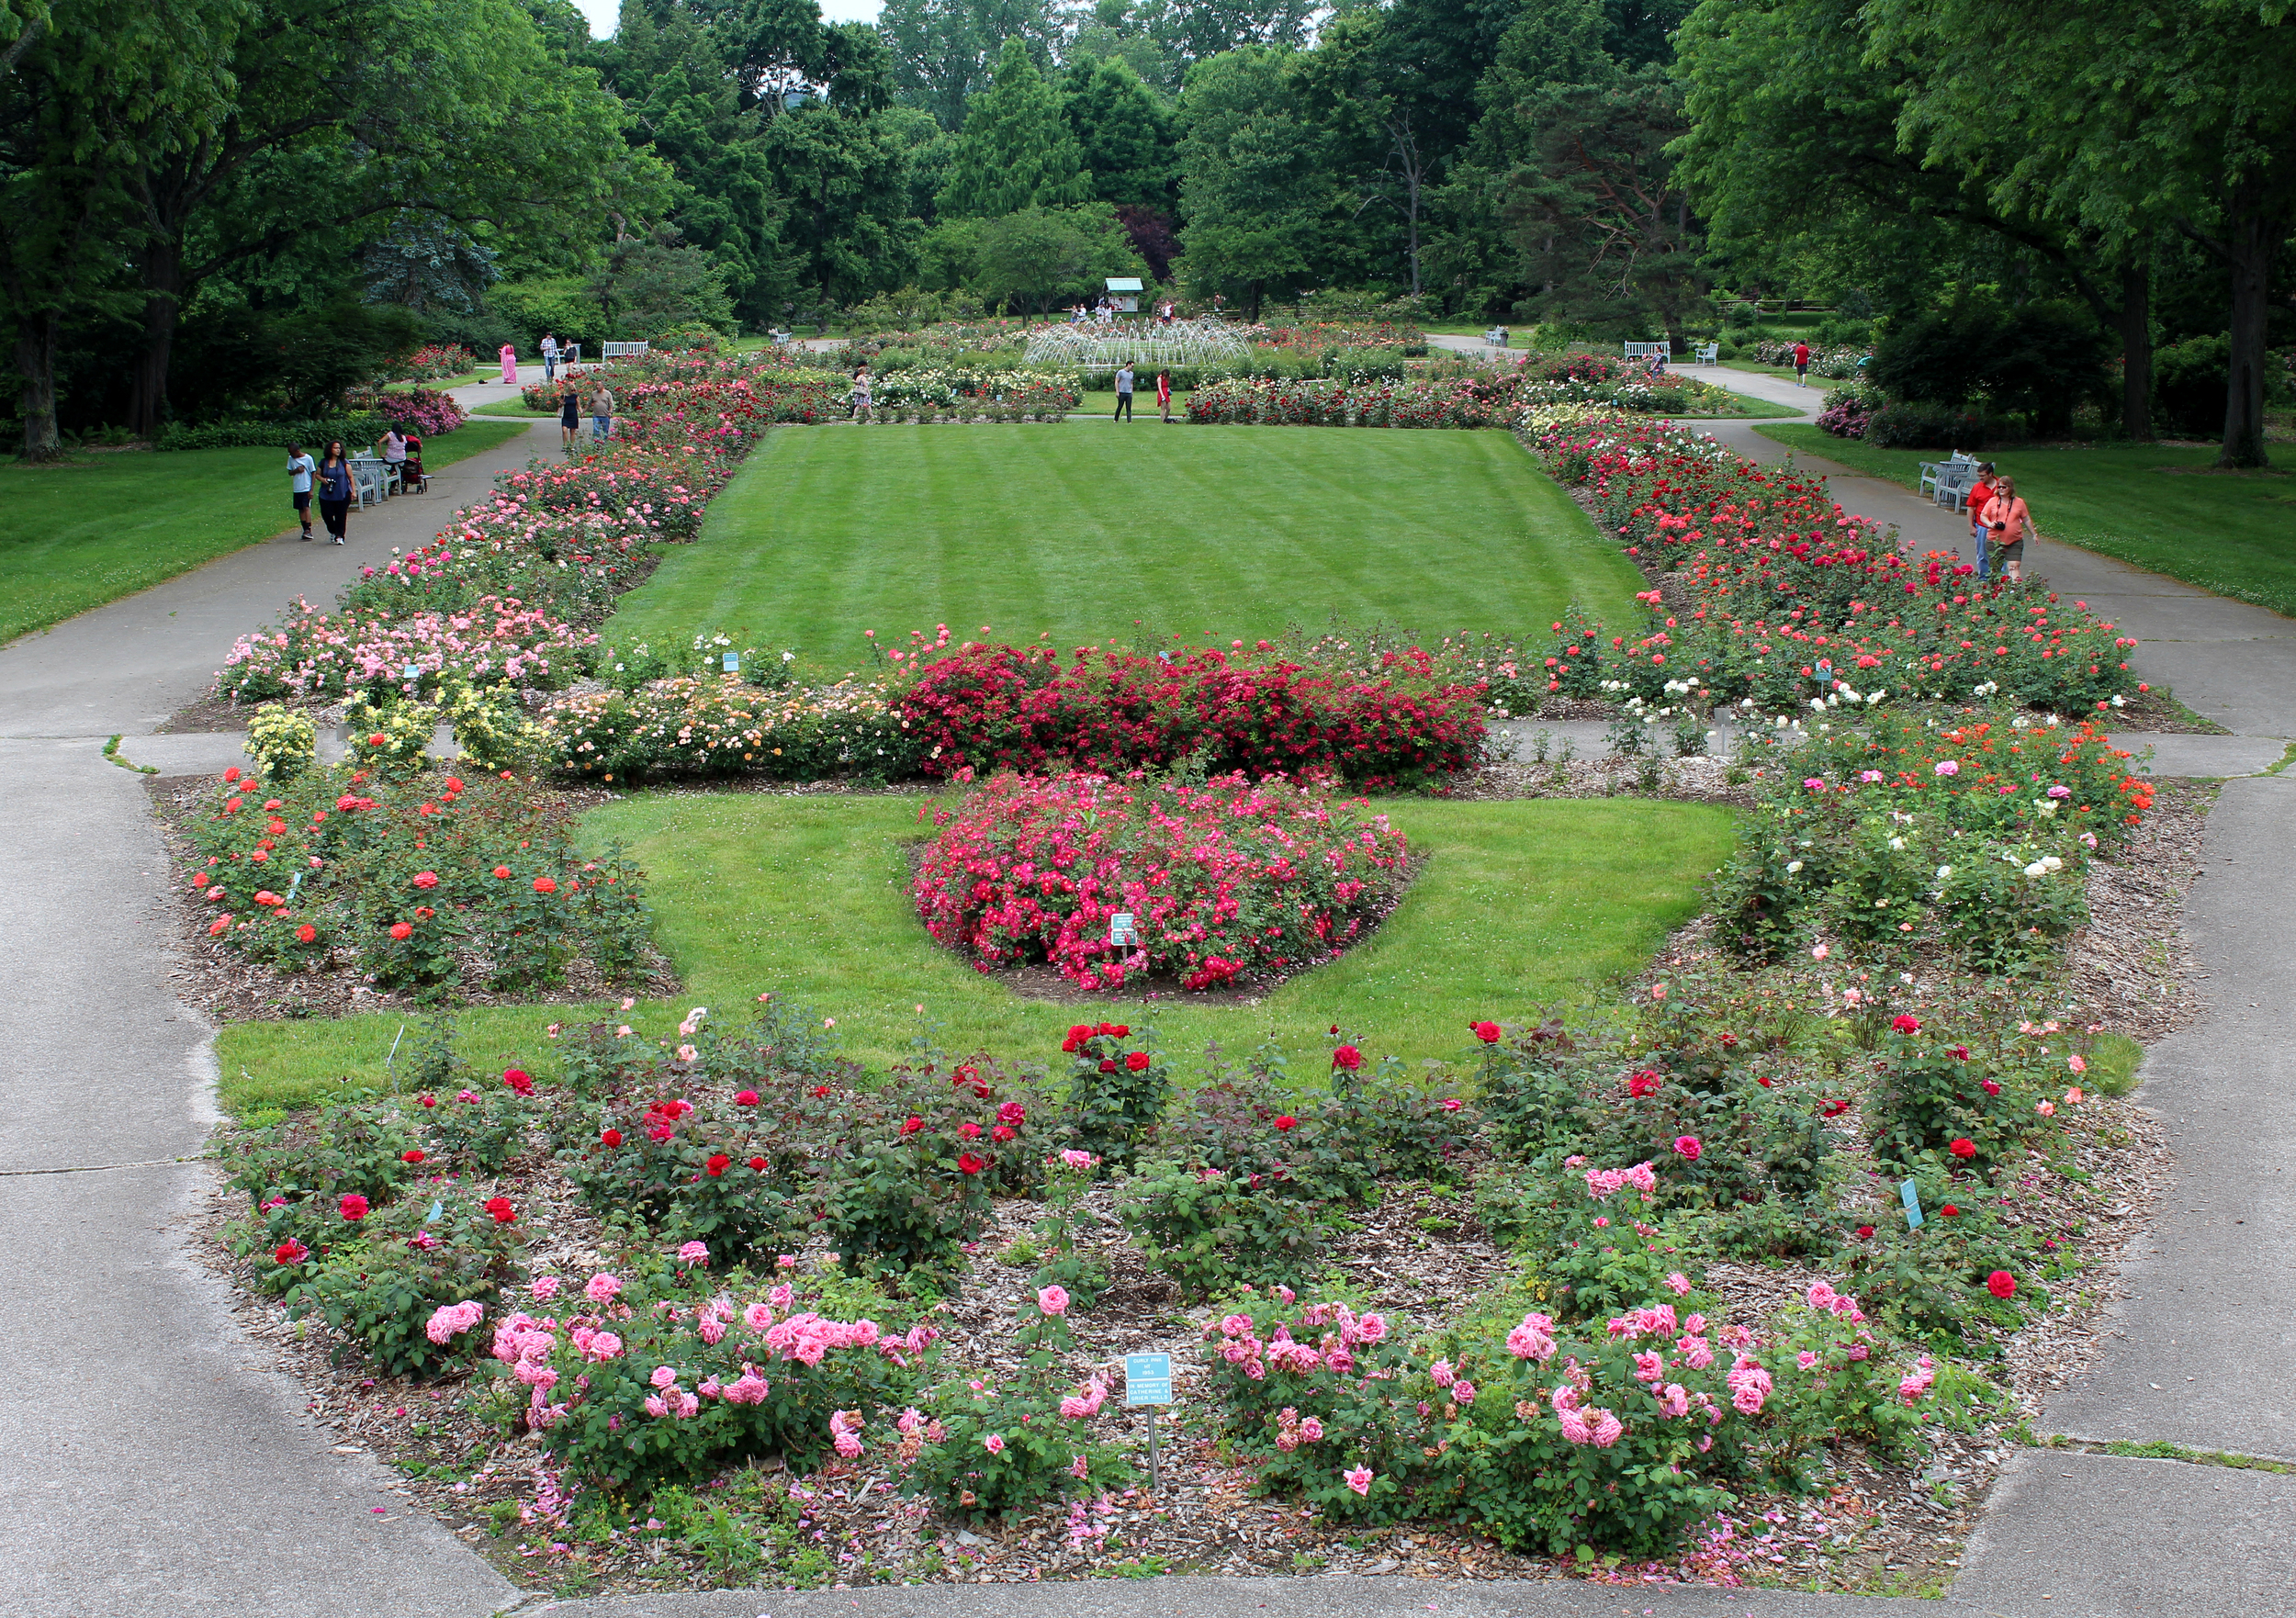 Overlooking the Park of Roses